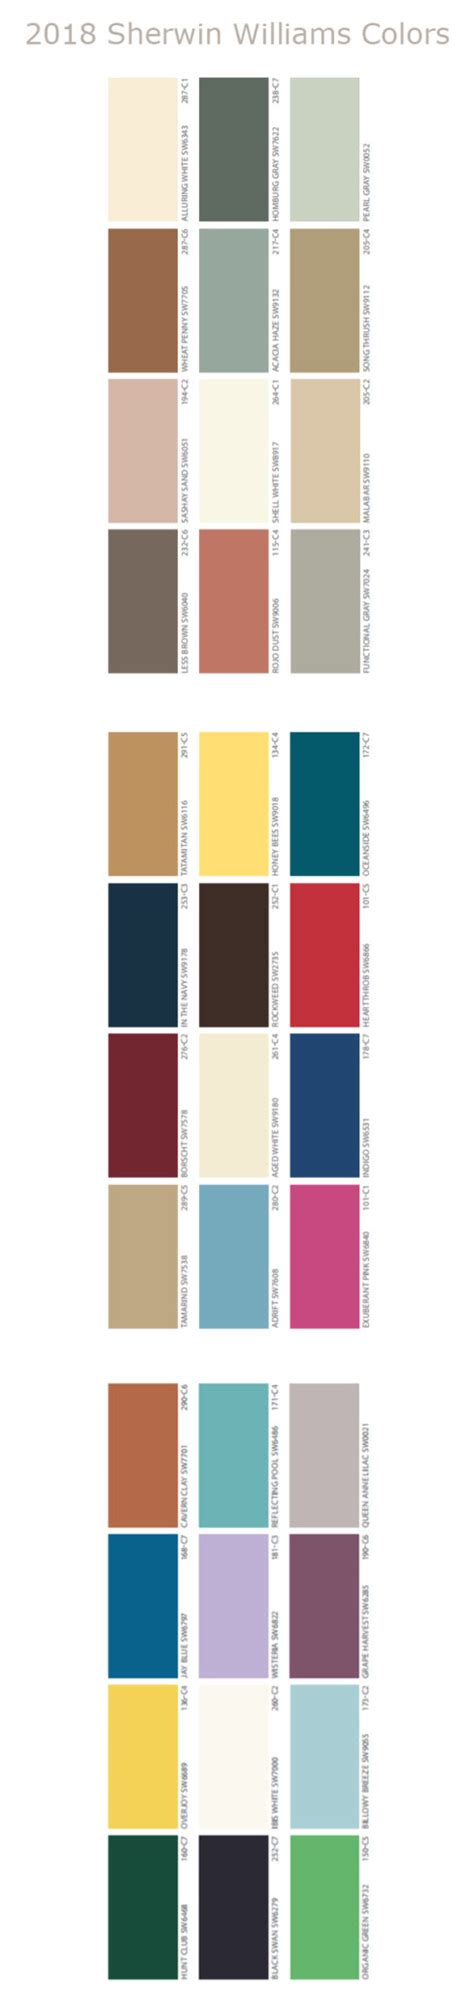 sherwin williams paint colors 2017 28 paint color trends 2017 sherwin williams